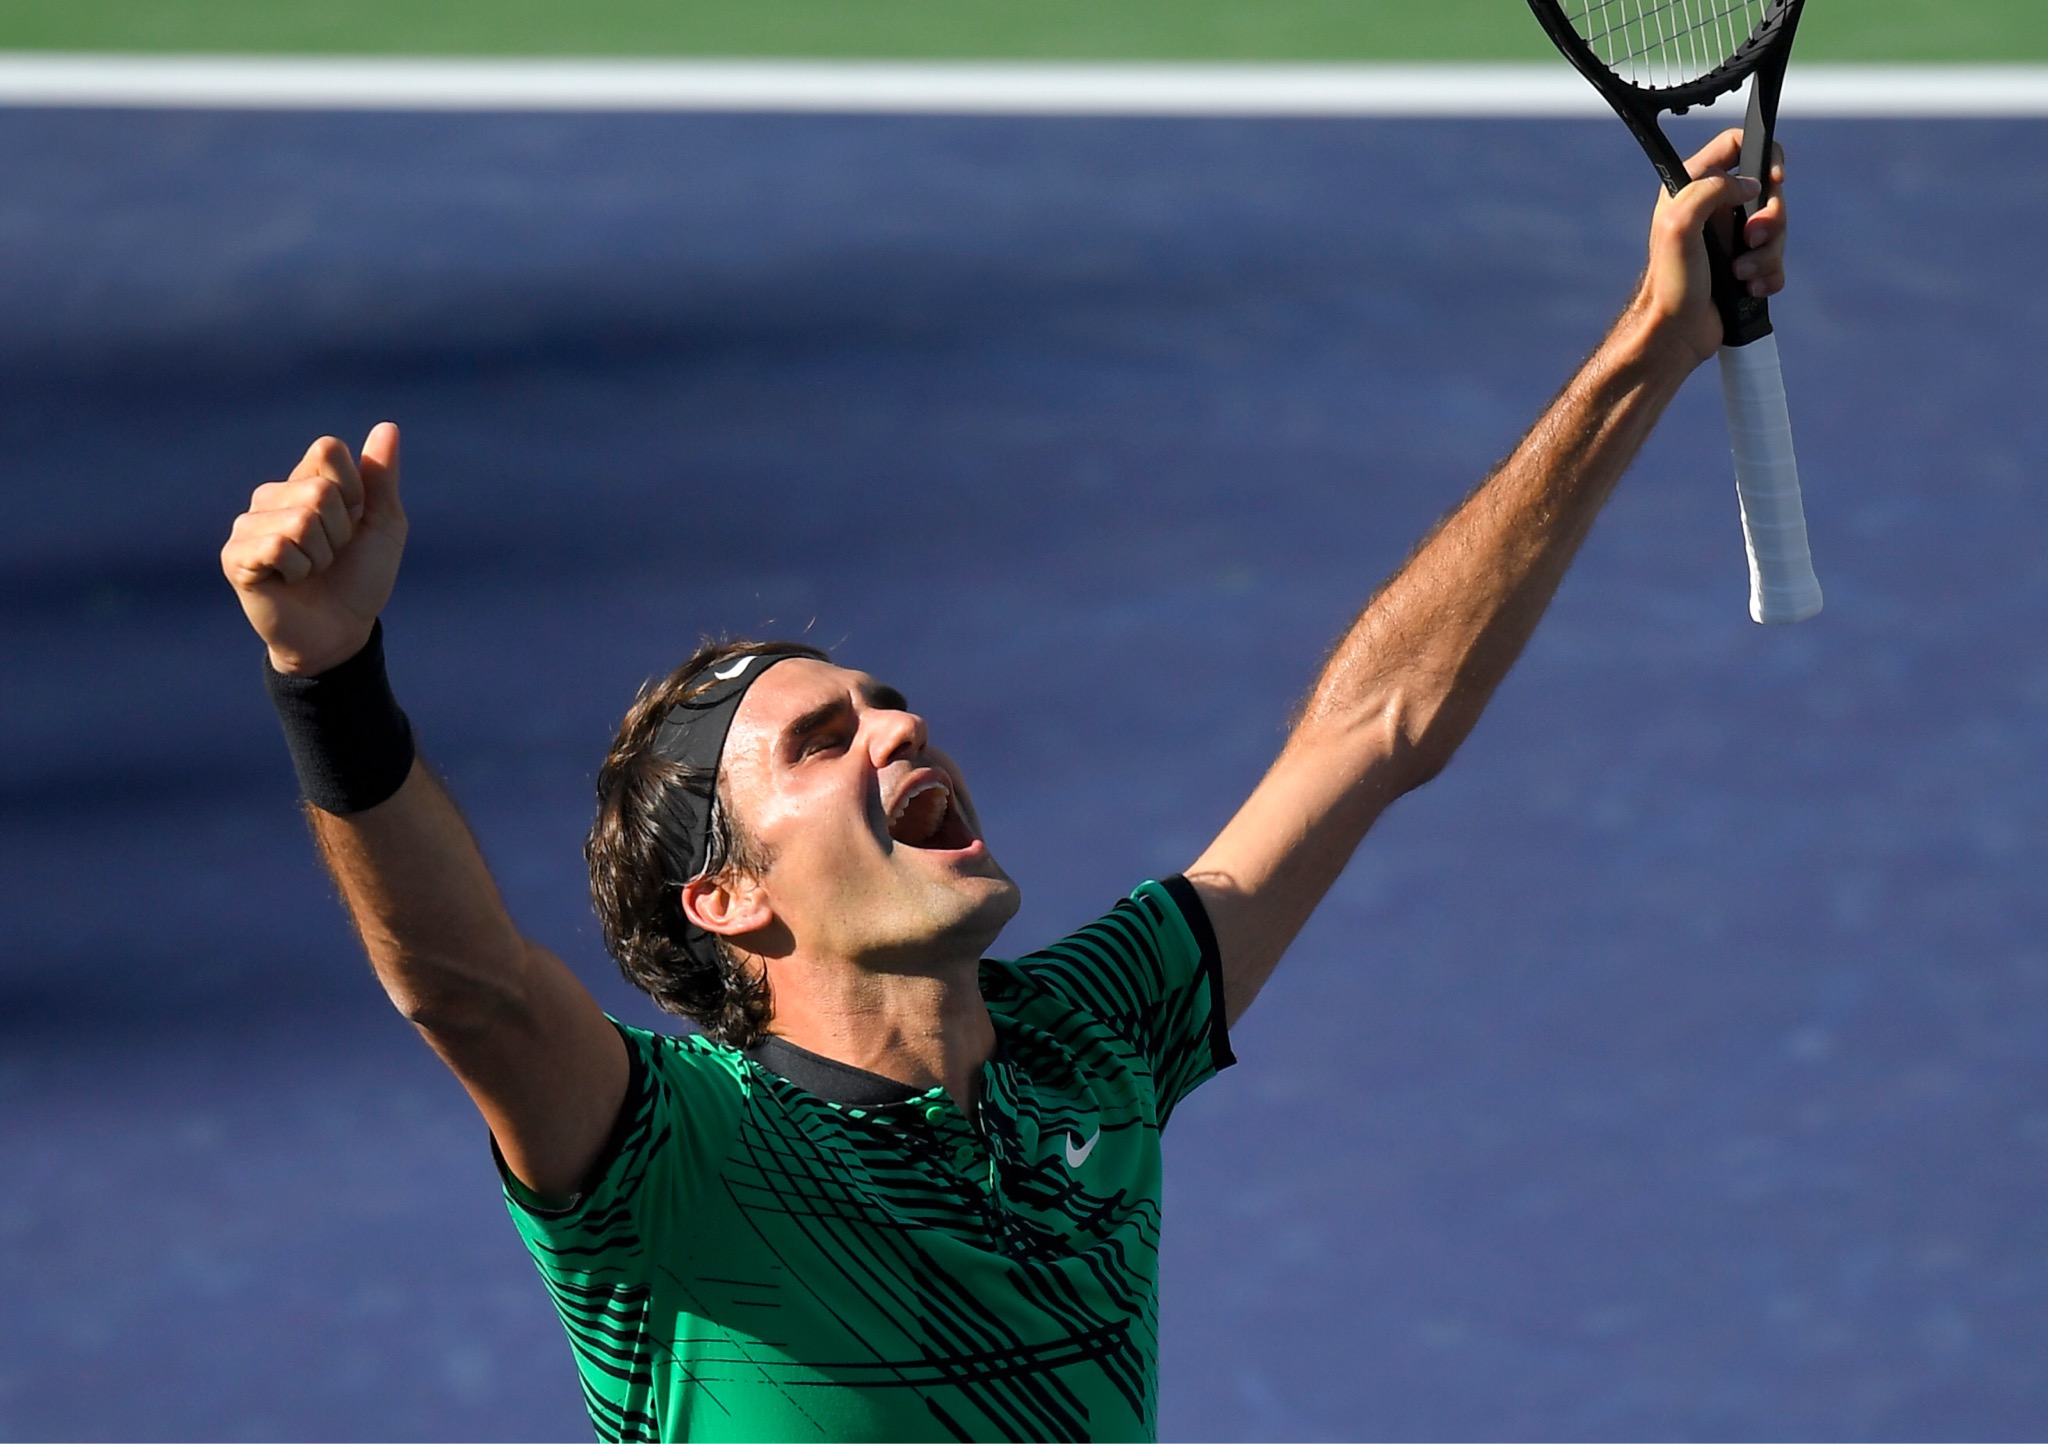 Roger Federer, of Switzerland, celebrates his win against Stan Wawrinka, also of Switzerland, in the men's final at the BNP Paribas Open tennis tournament, Sunday, March 19, in Indian Wells, Calif. (AP Photo/Mark J. Terrill)